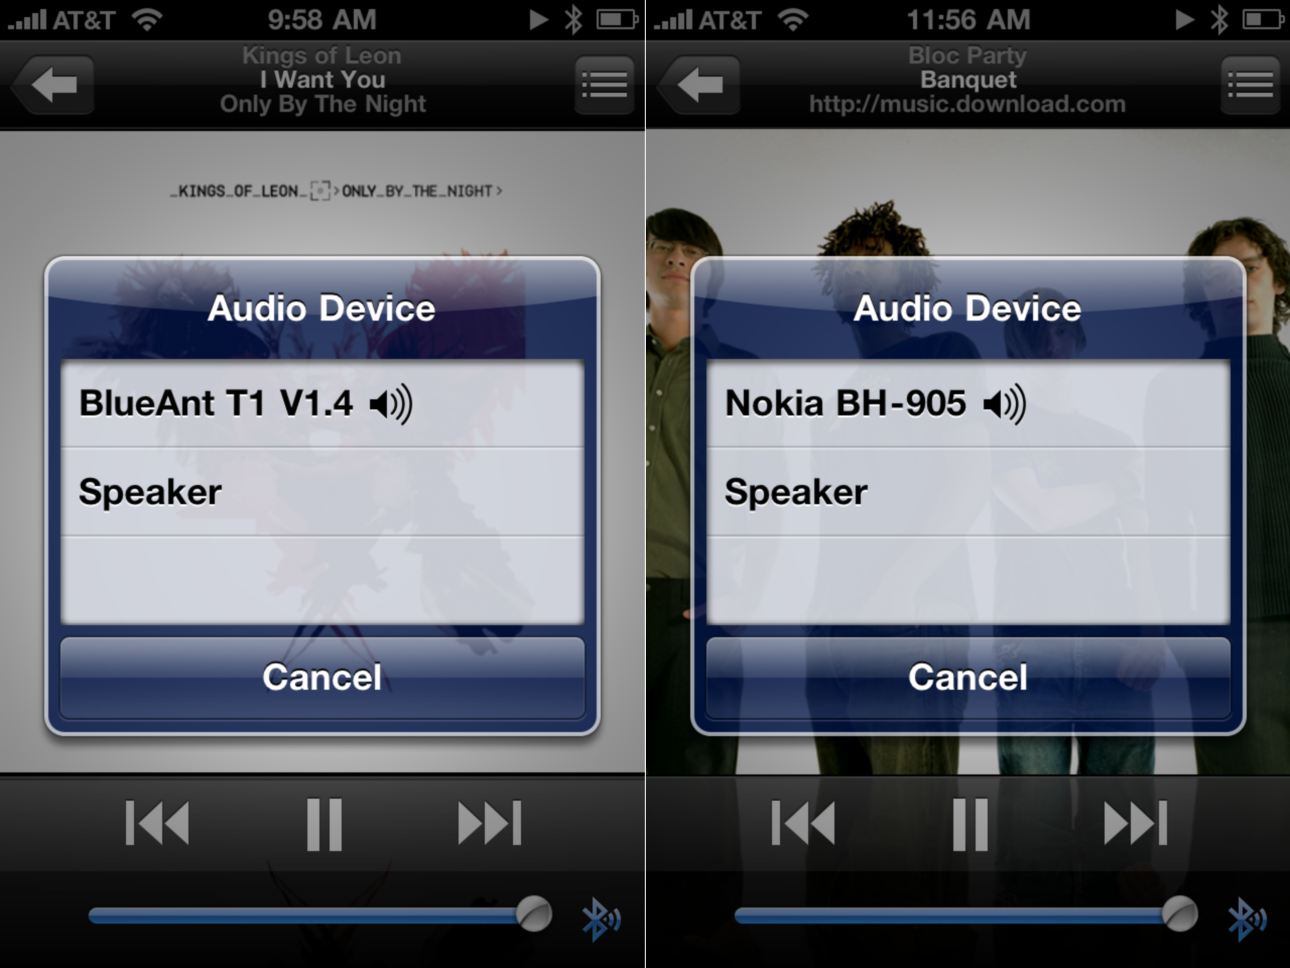 Screenshots that show the BlueAnt T1 and Nokia BH-905 both working with the iPhone 4.